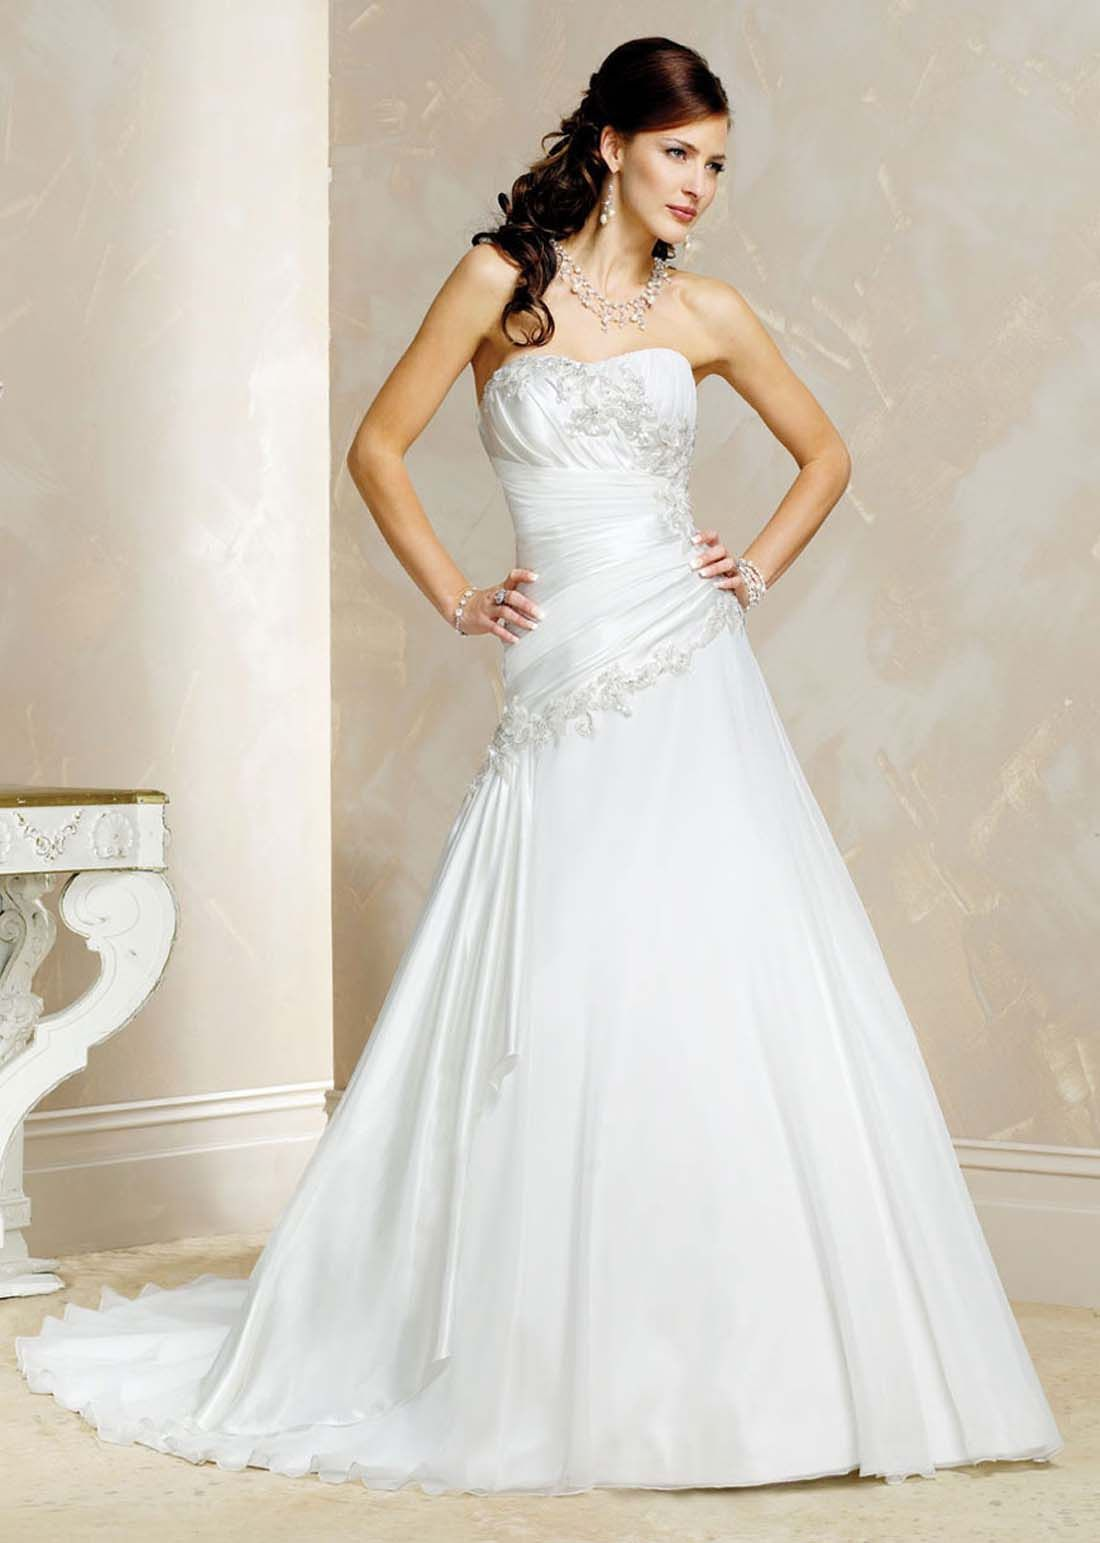 99 Wedding Dresses For Tall Brides Plus Size Guest Check More